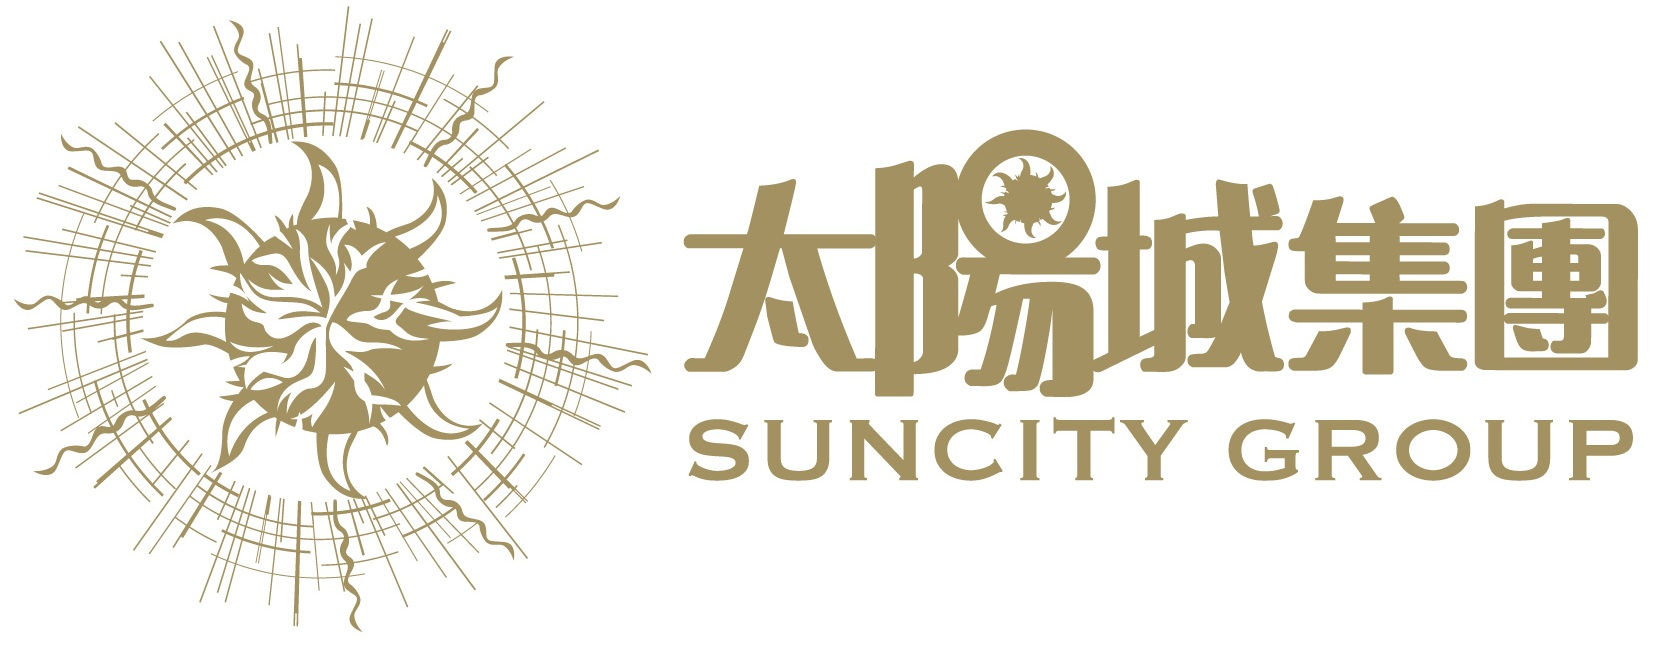 Suncity Group